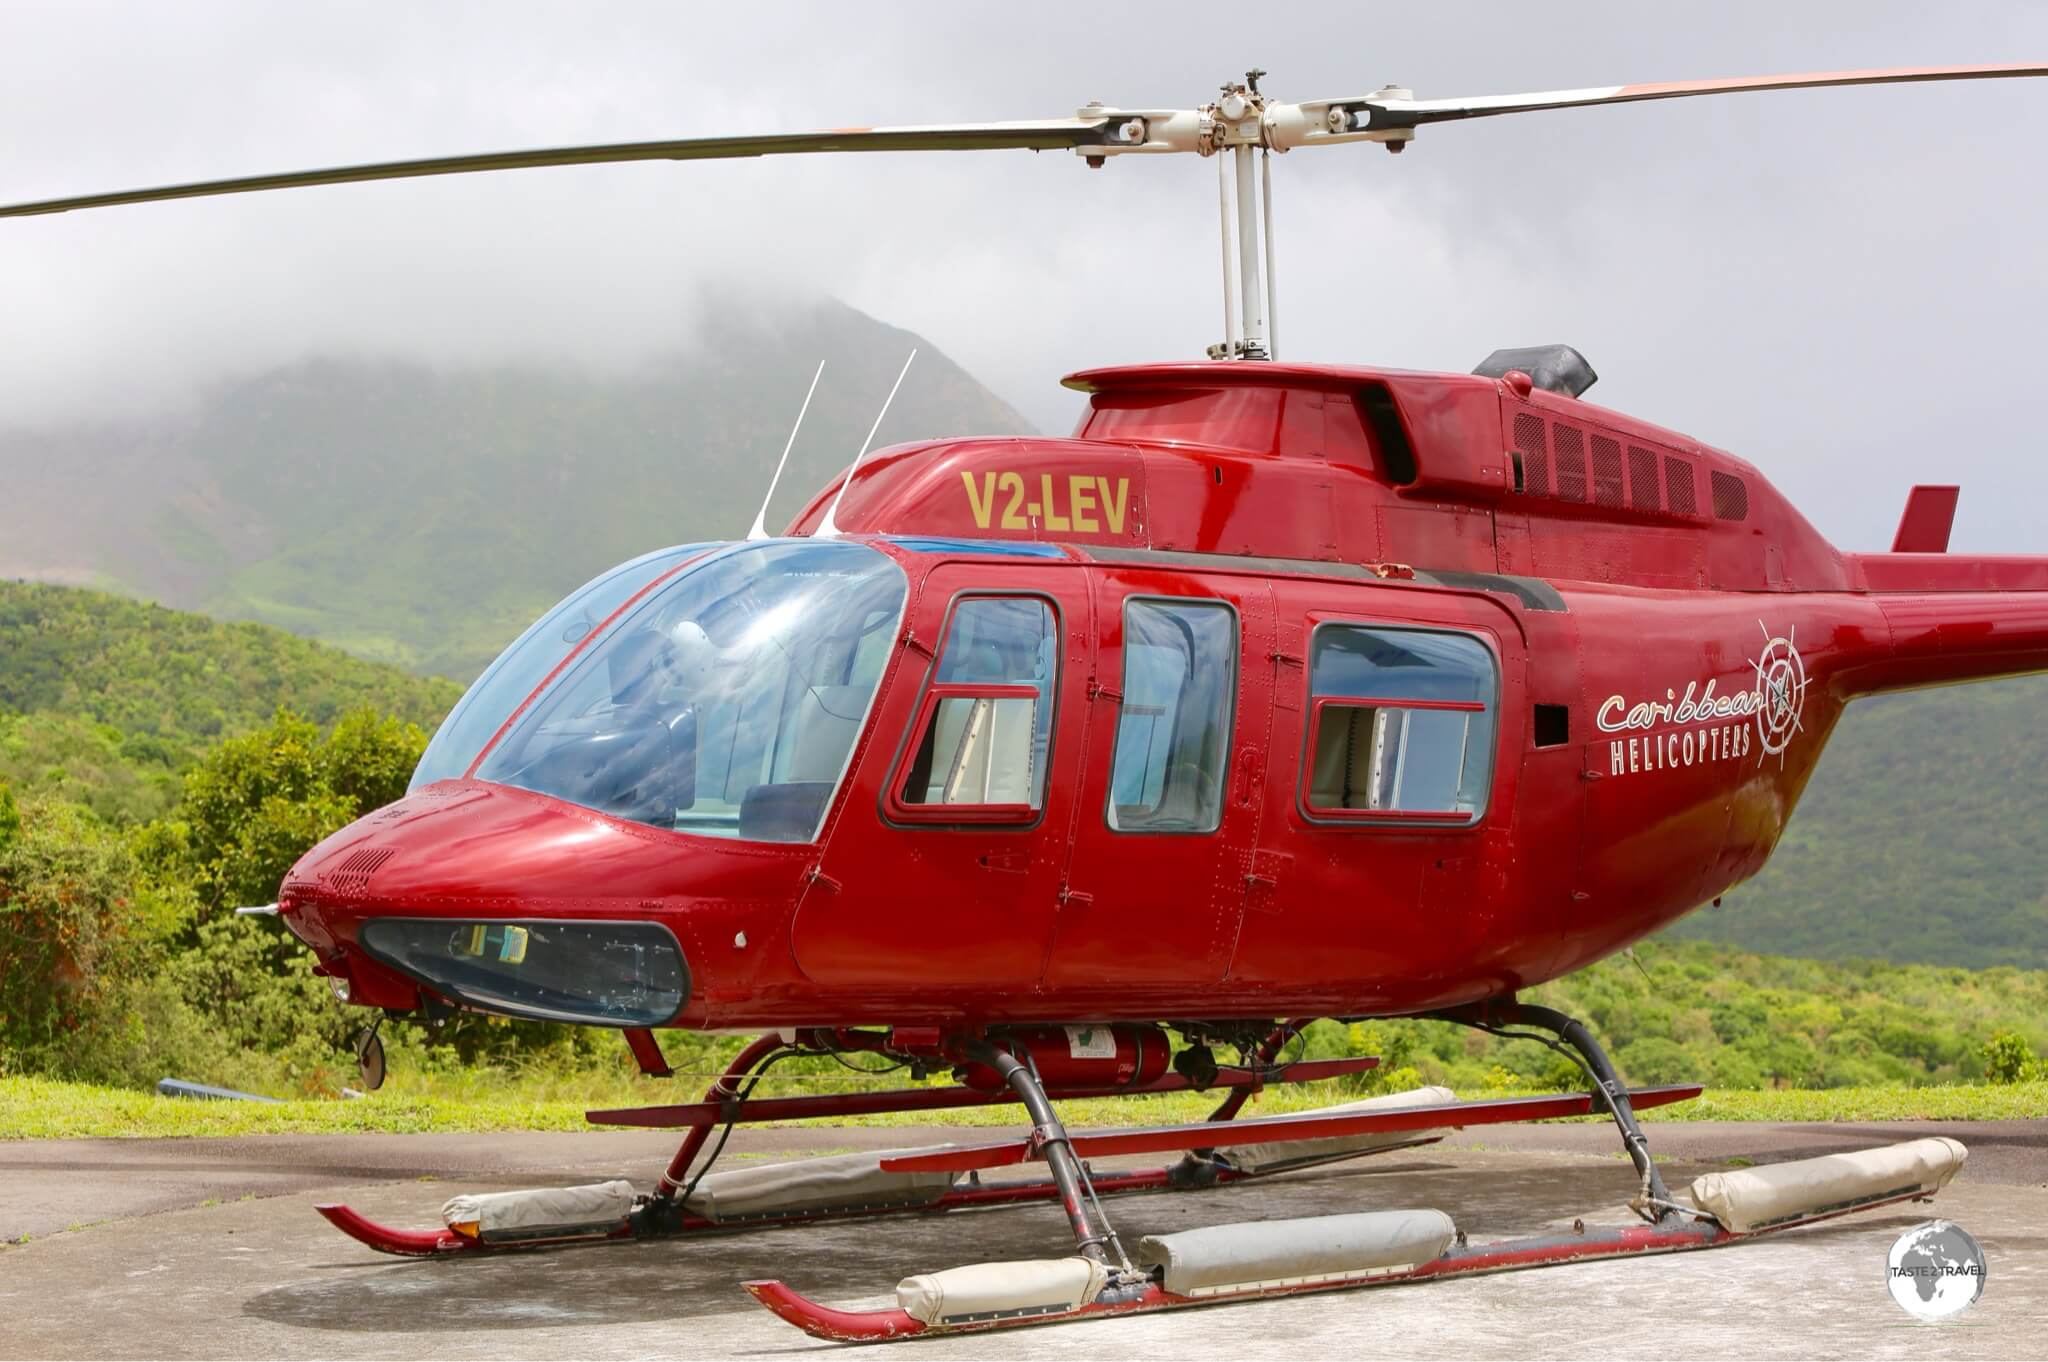 Scientists at the Montserrat Volcano Observatory monitor the volcano using different means including a helicopter.